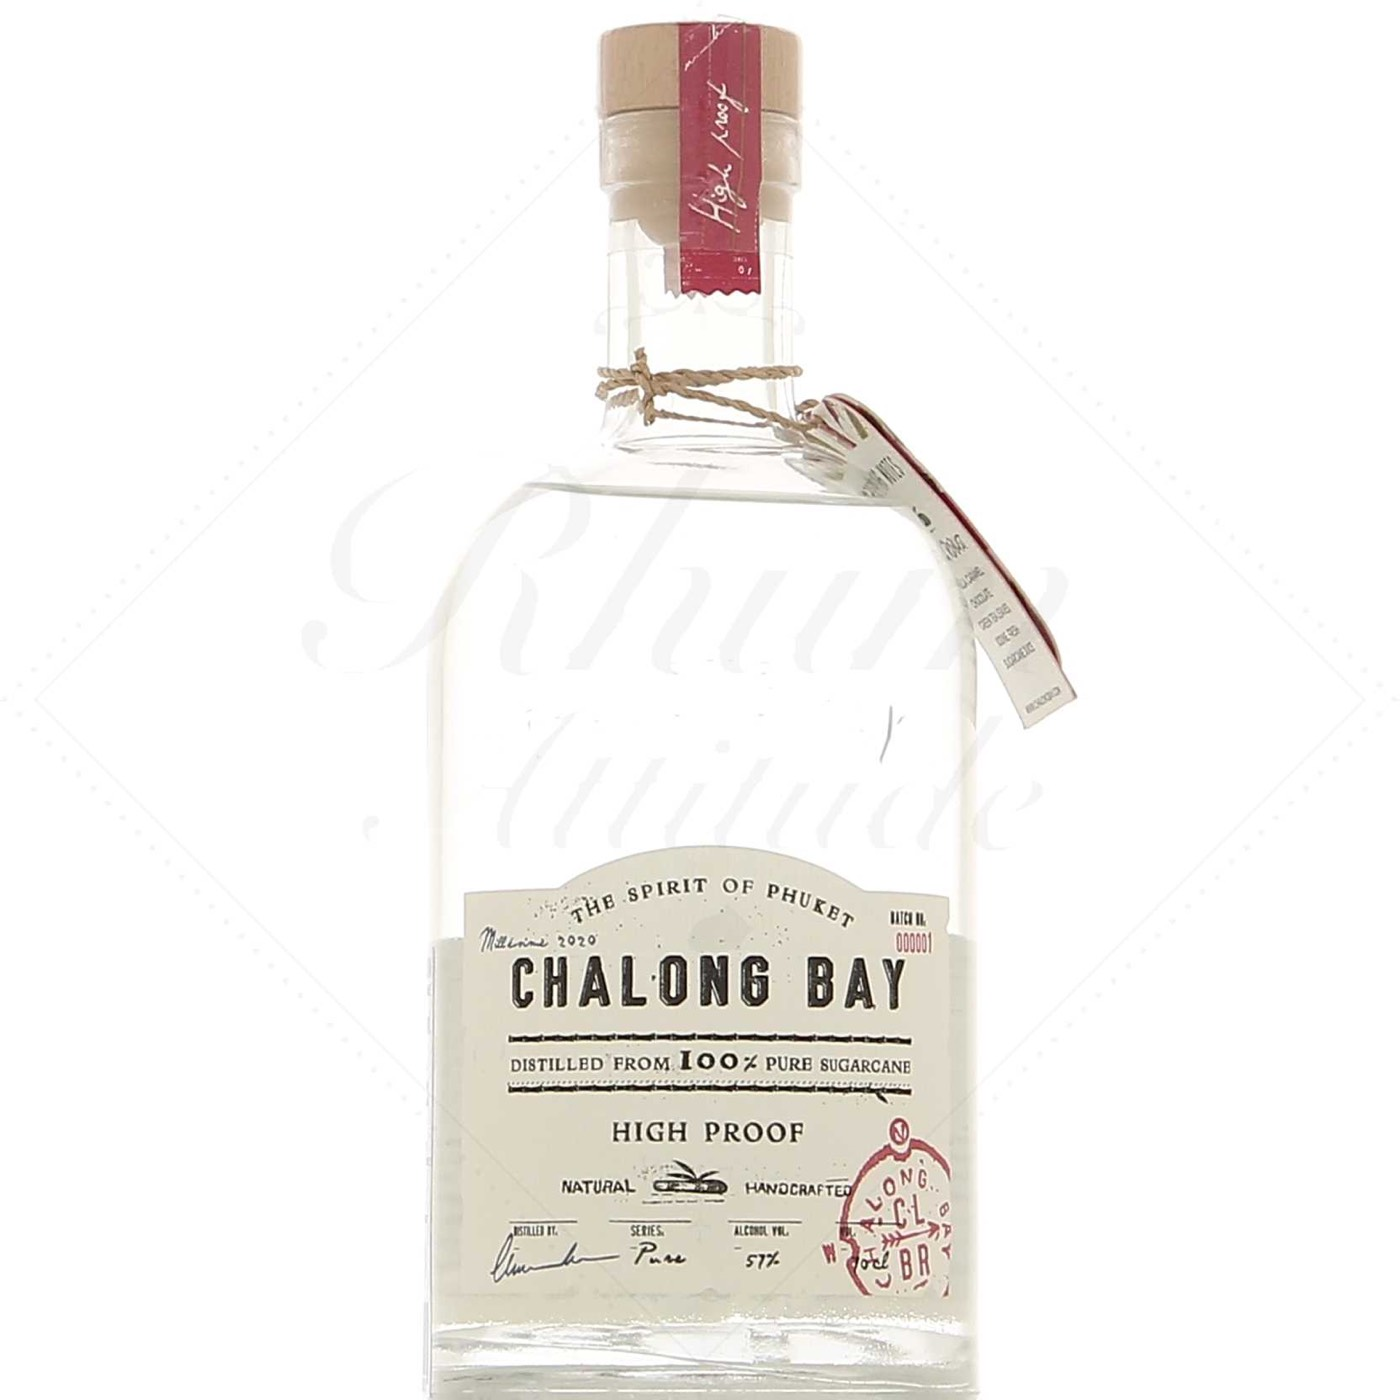 Bottle image of Chalong Bay High Proof